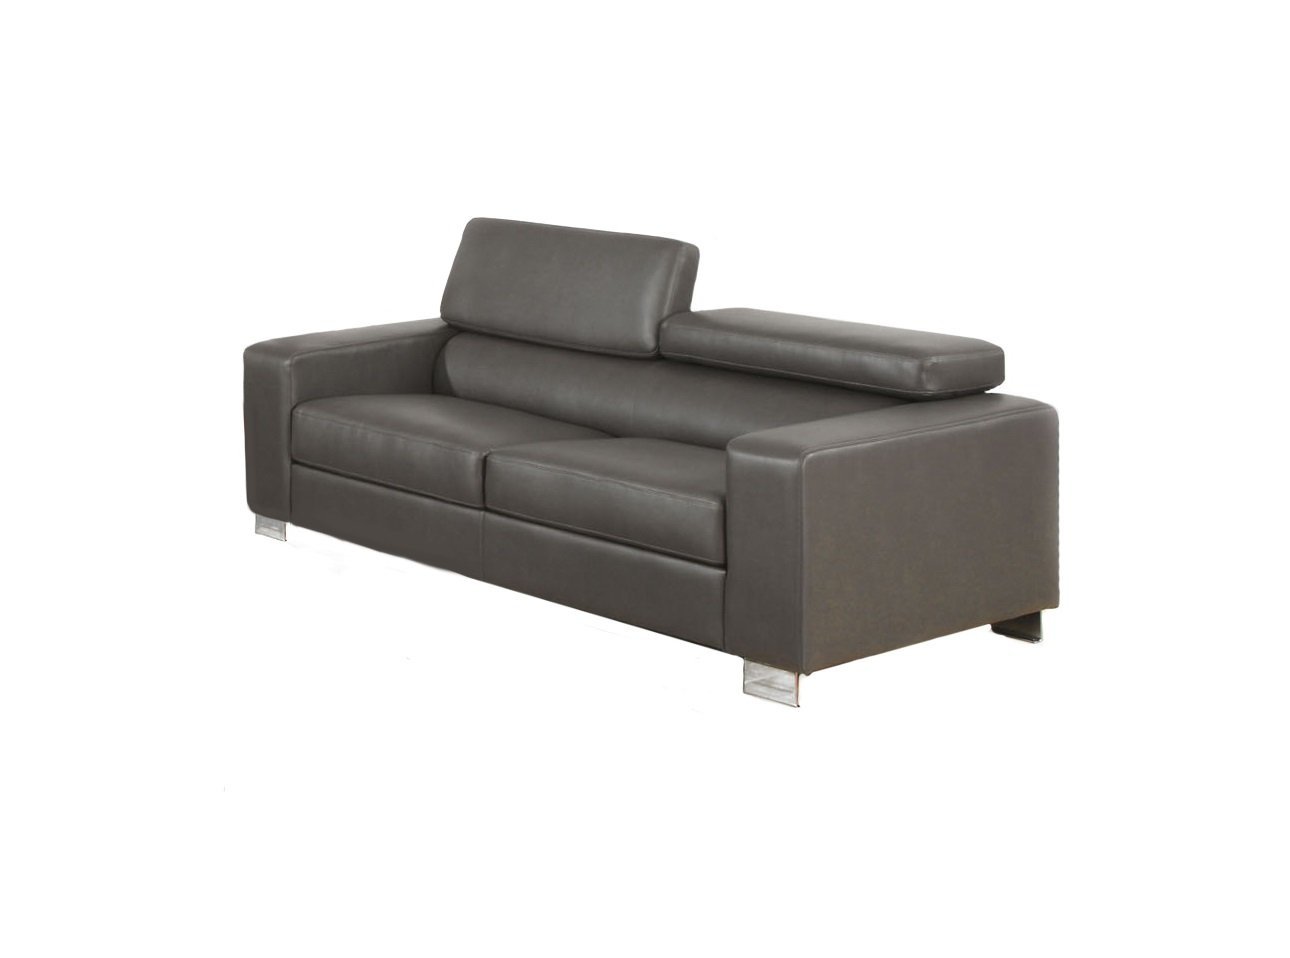 Furniture of America Bloomsbury Bonded Leather Match Sofa - Gray